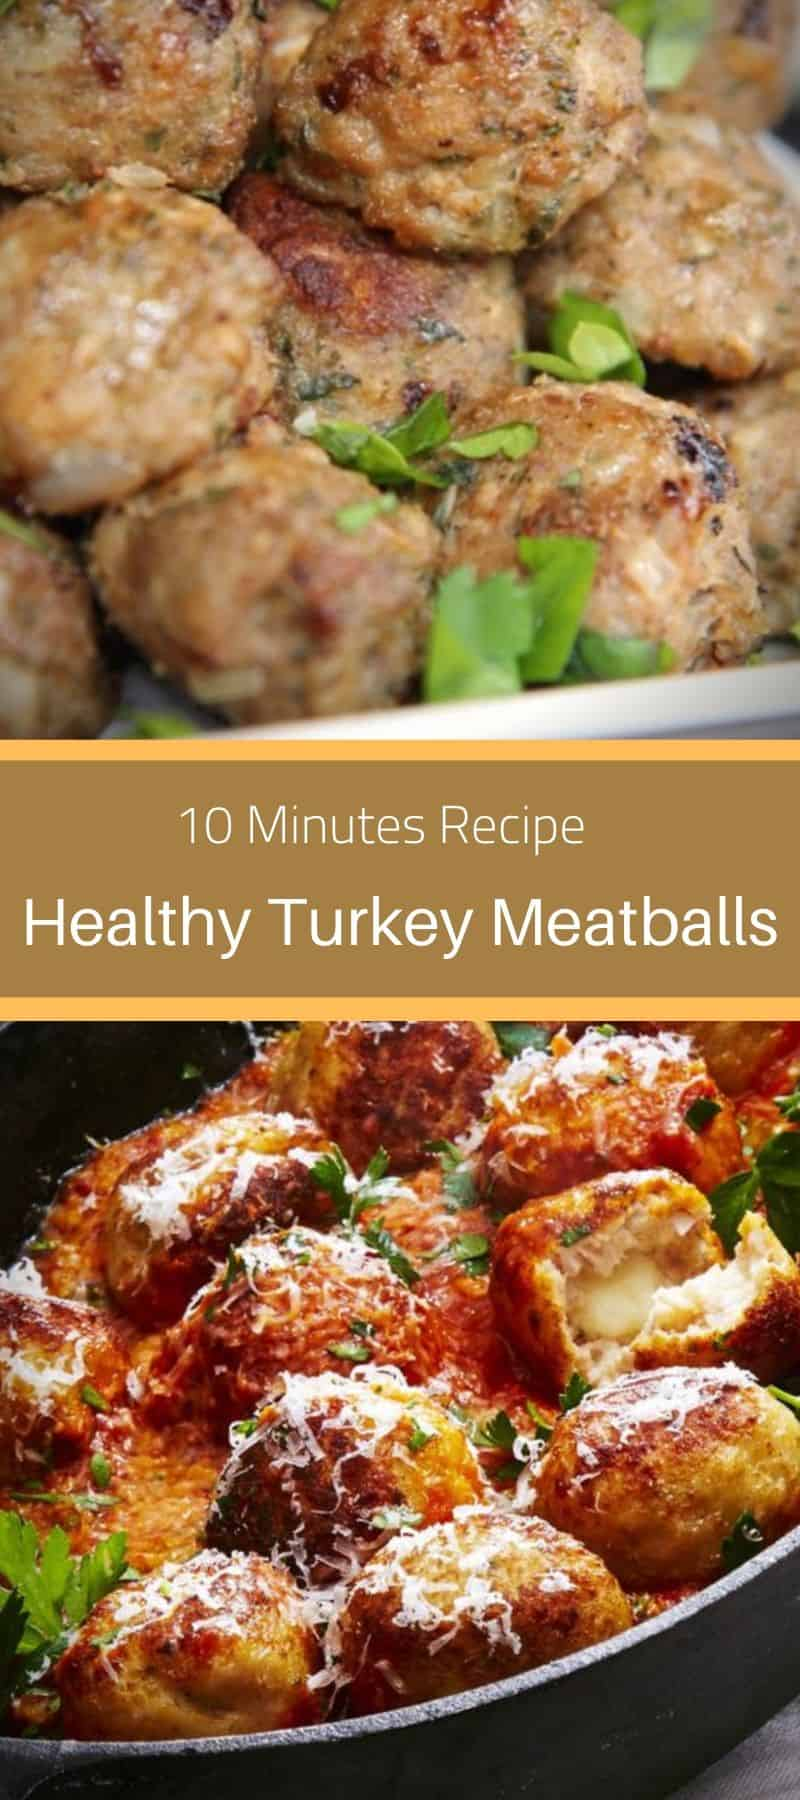 10-Minute Healthy Turkey Meatballs Recipe 3